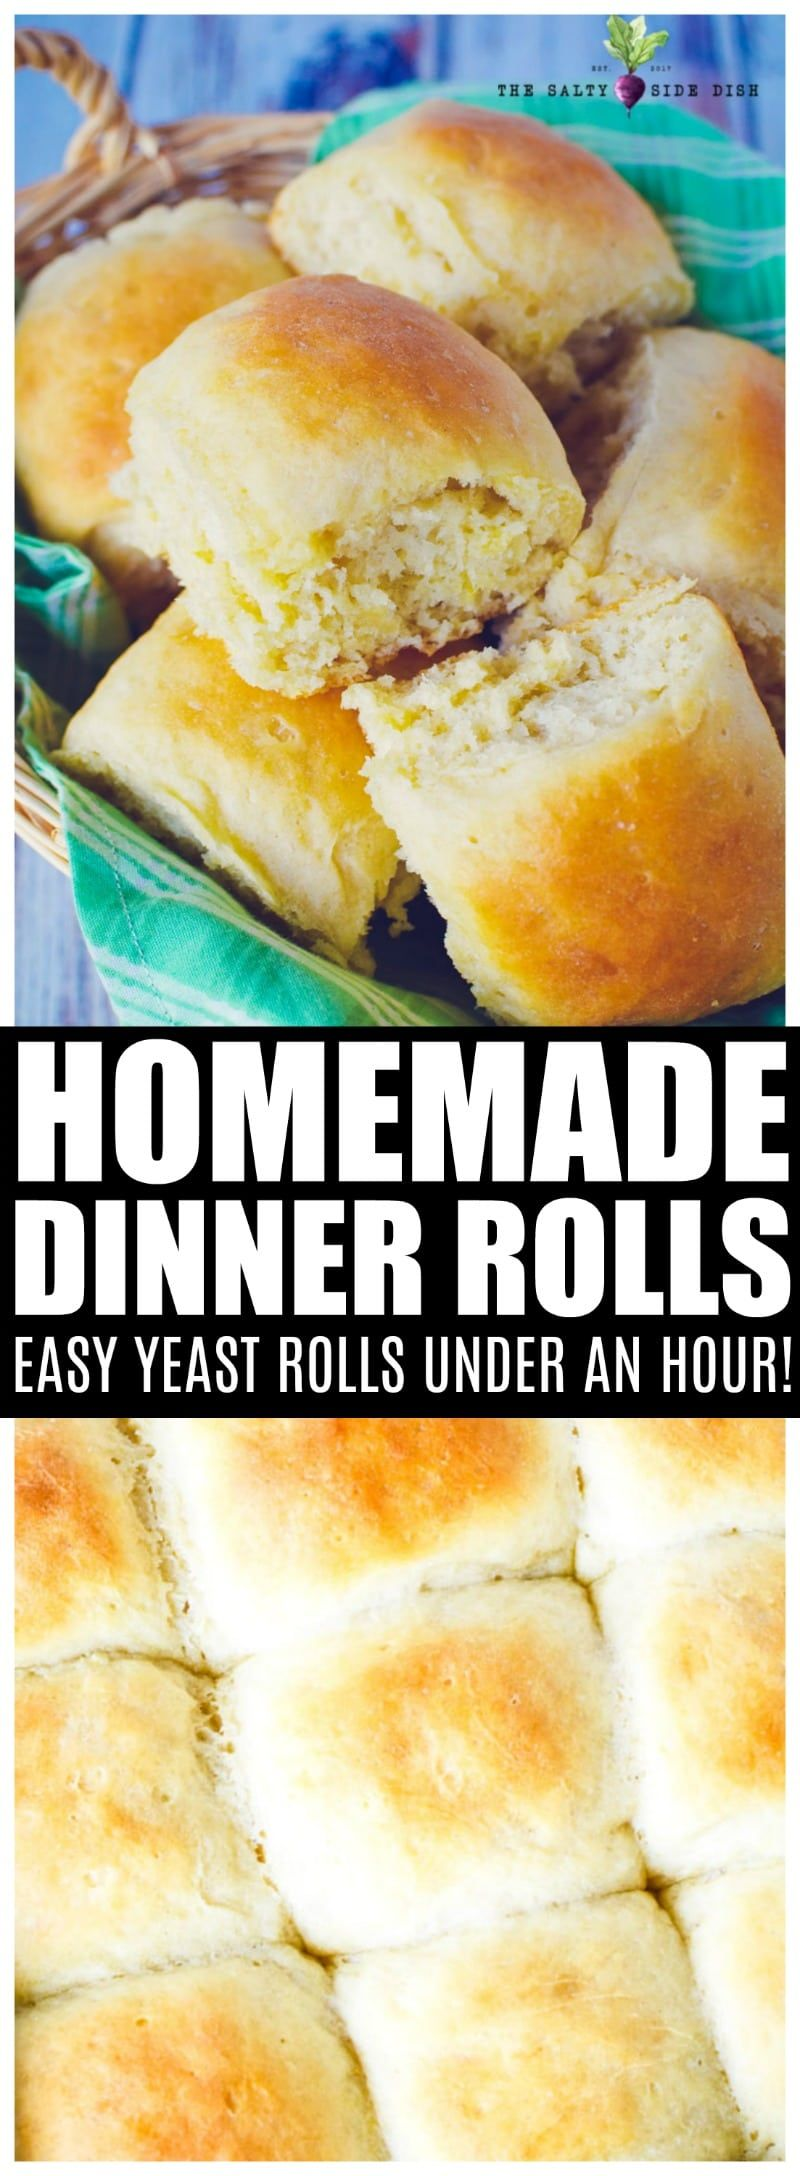 Easy Dinner Rolls | No Knead and Homemade images